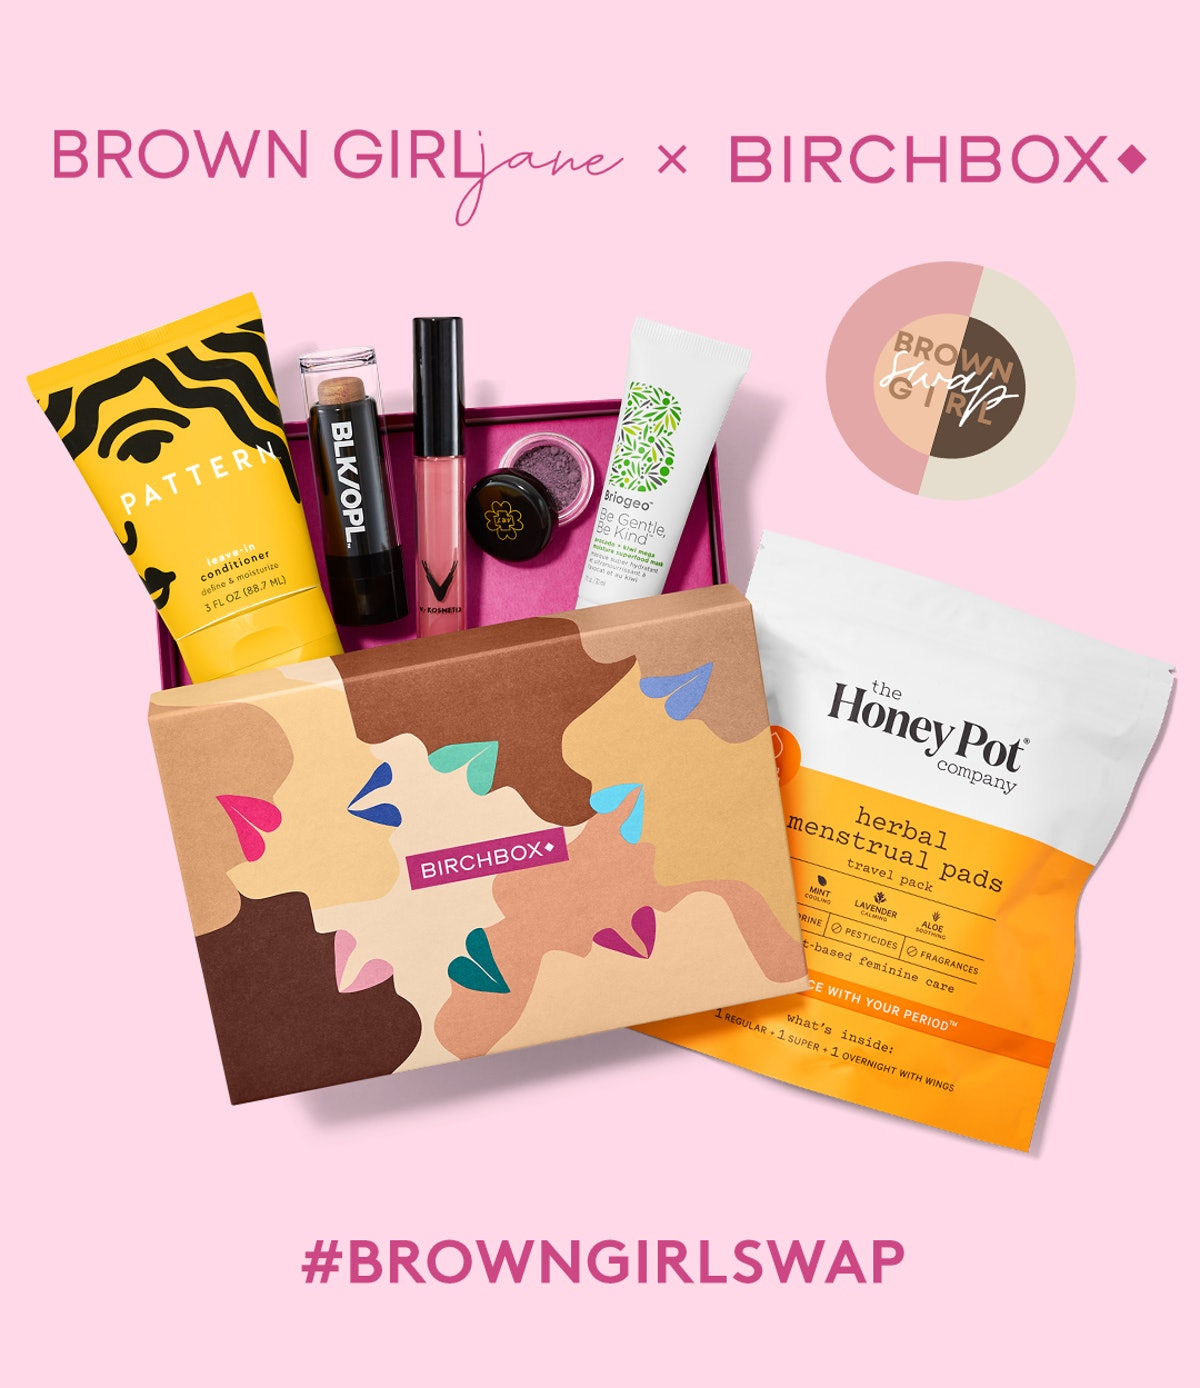 The Birchbox x Brown Girl Jane partnership amplifies the Brown Girl Swap Mission with a subscription...